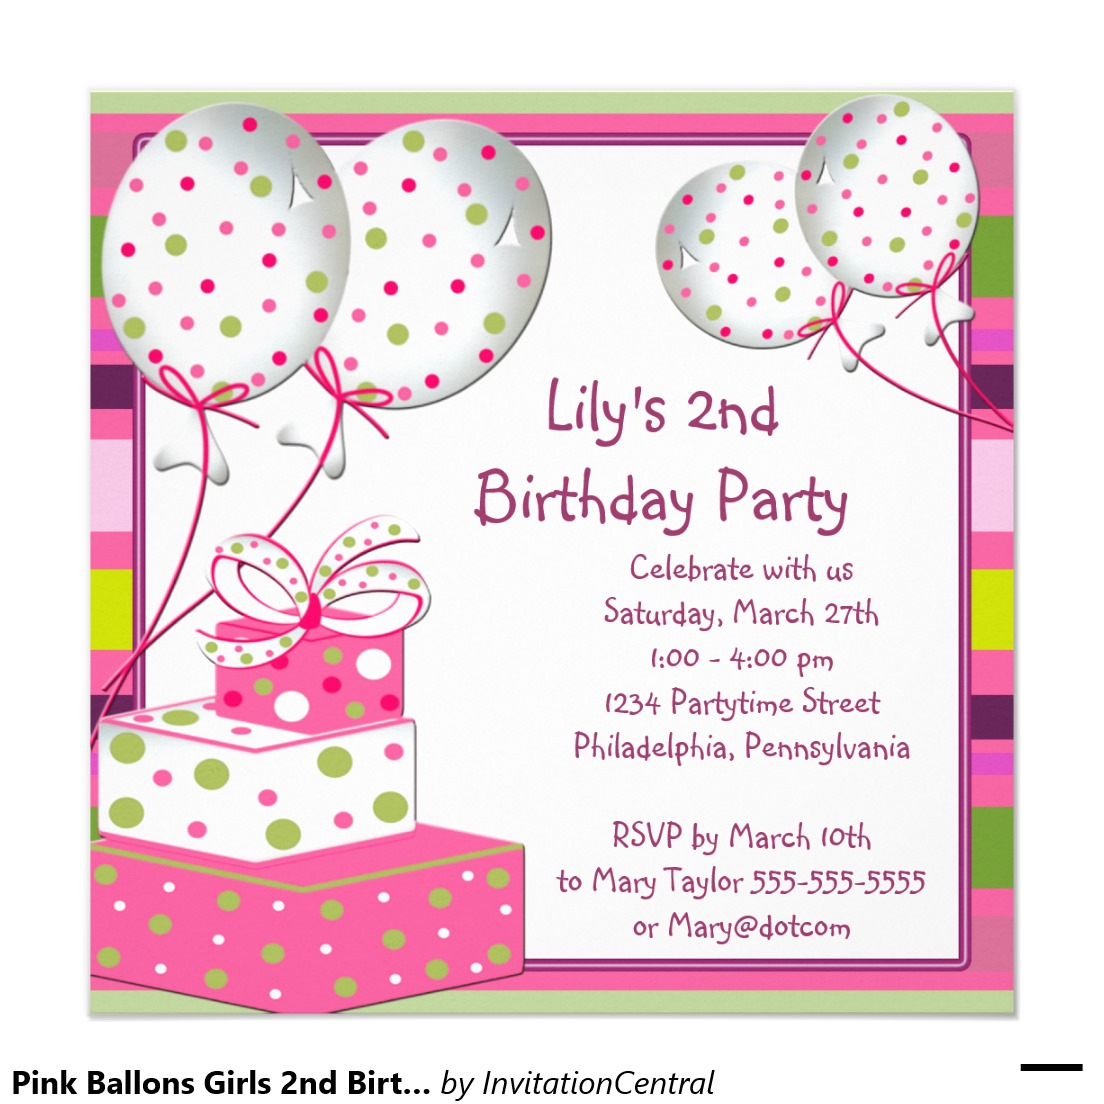 www birthday invitation cards ; birthday-party-invitation-card-to-help-your-creativity-in-designing-your-beauteous-Party-invitations-6